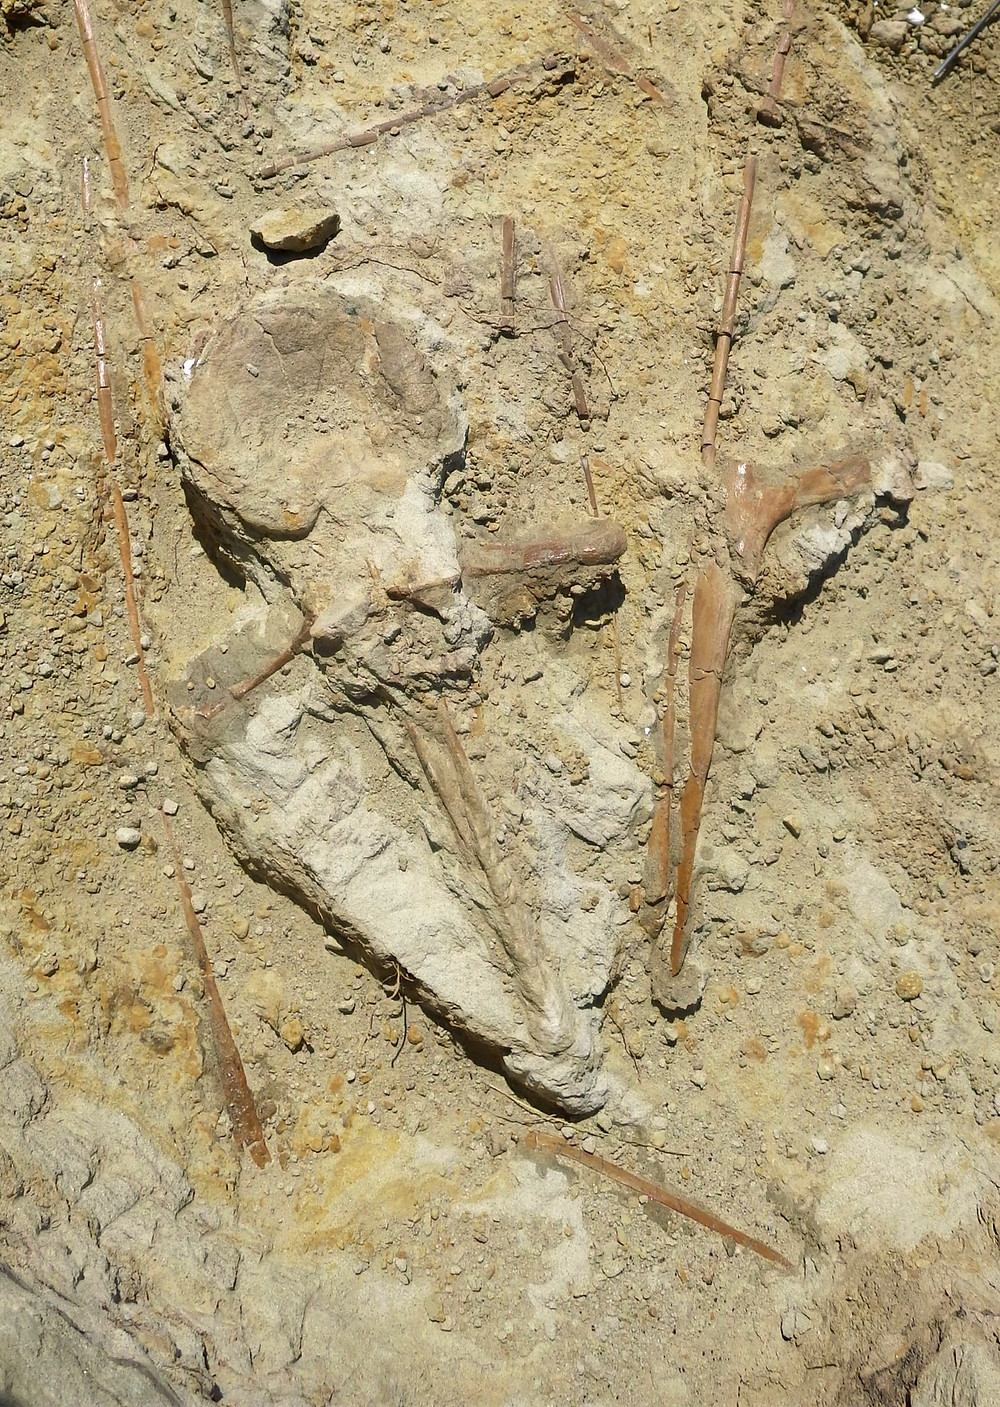 A thin dorsal spine attaches to the sturdier centrum in a hadrosaur vertebra